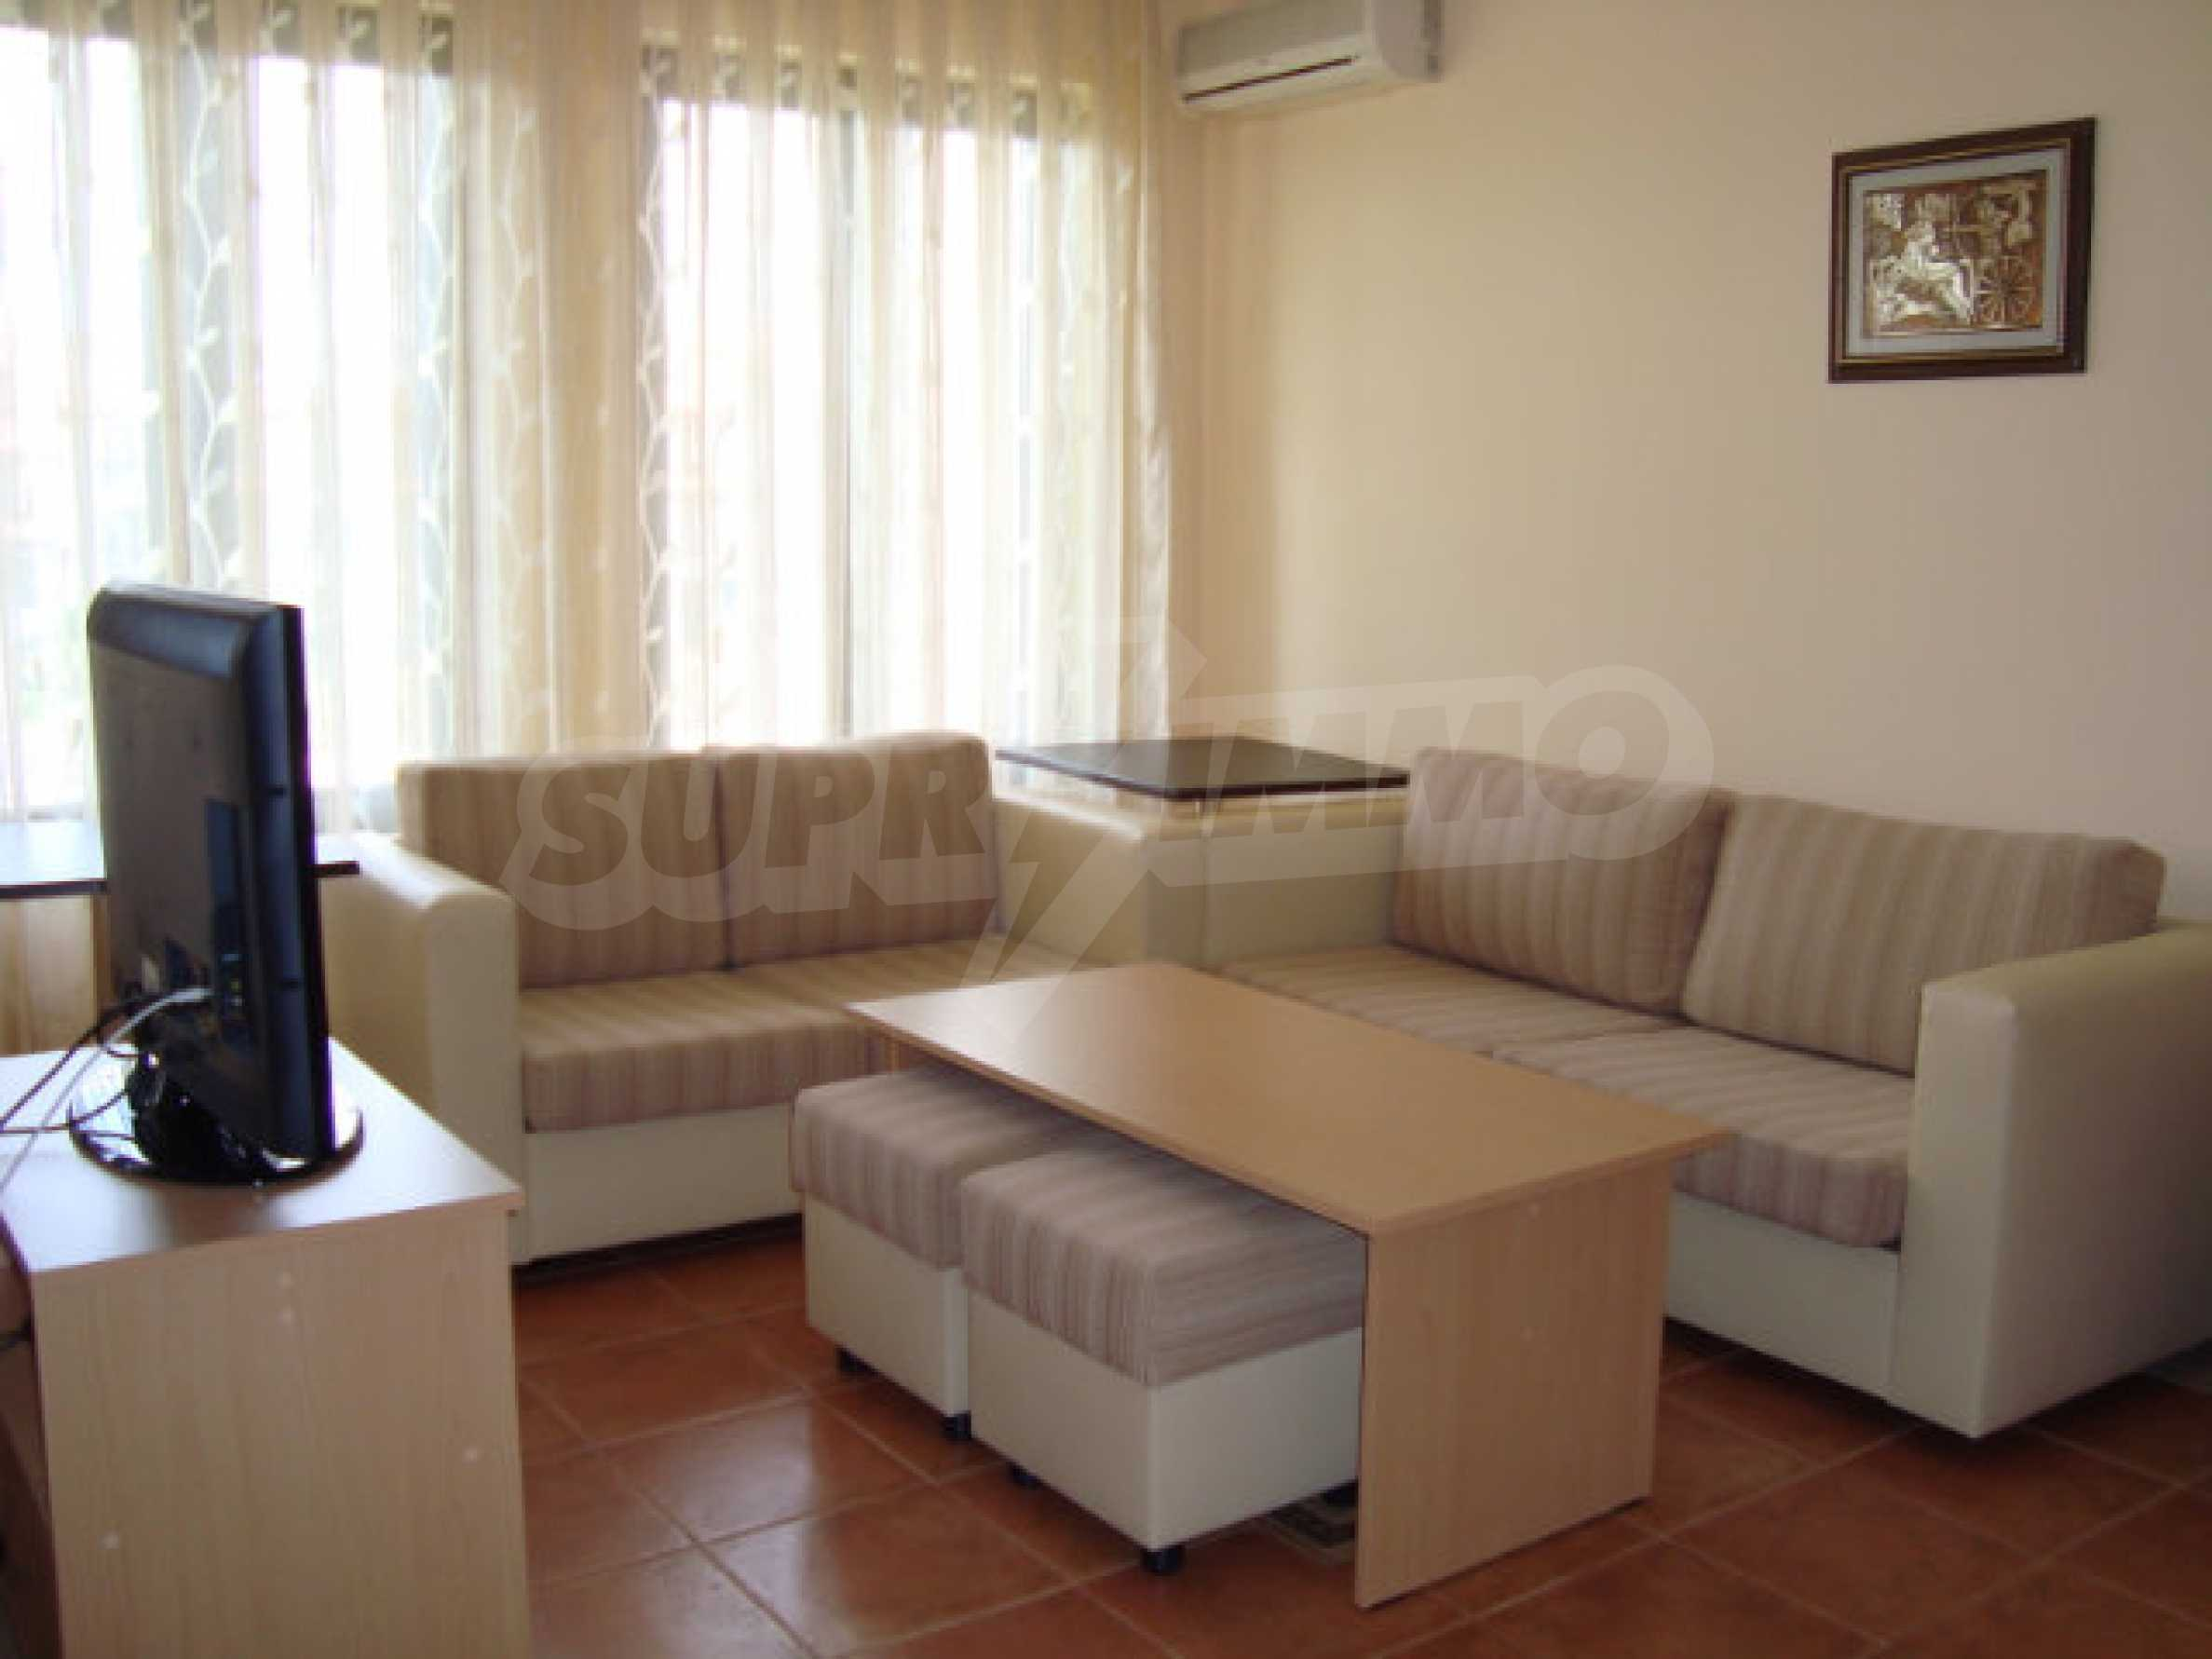 Two-bedroom apartment in Saint Nicholas complex in Chernomorets 7